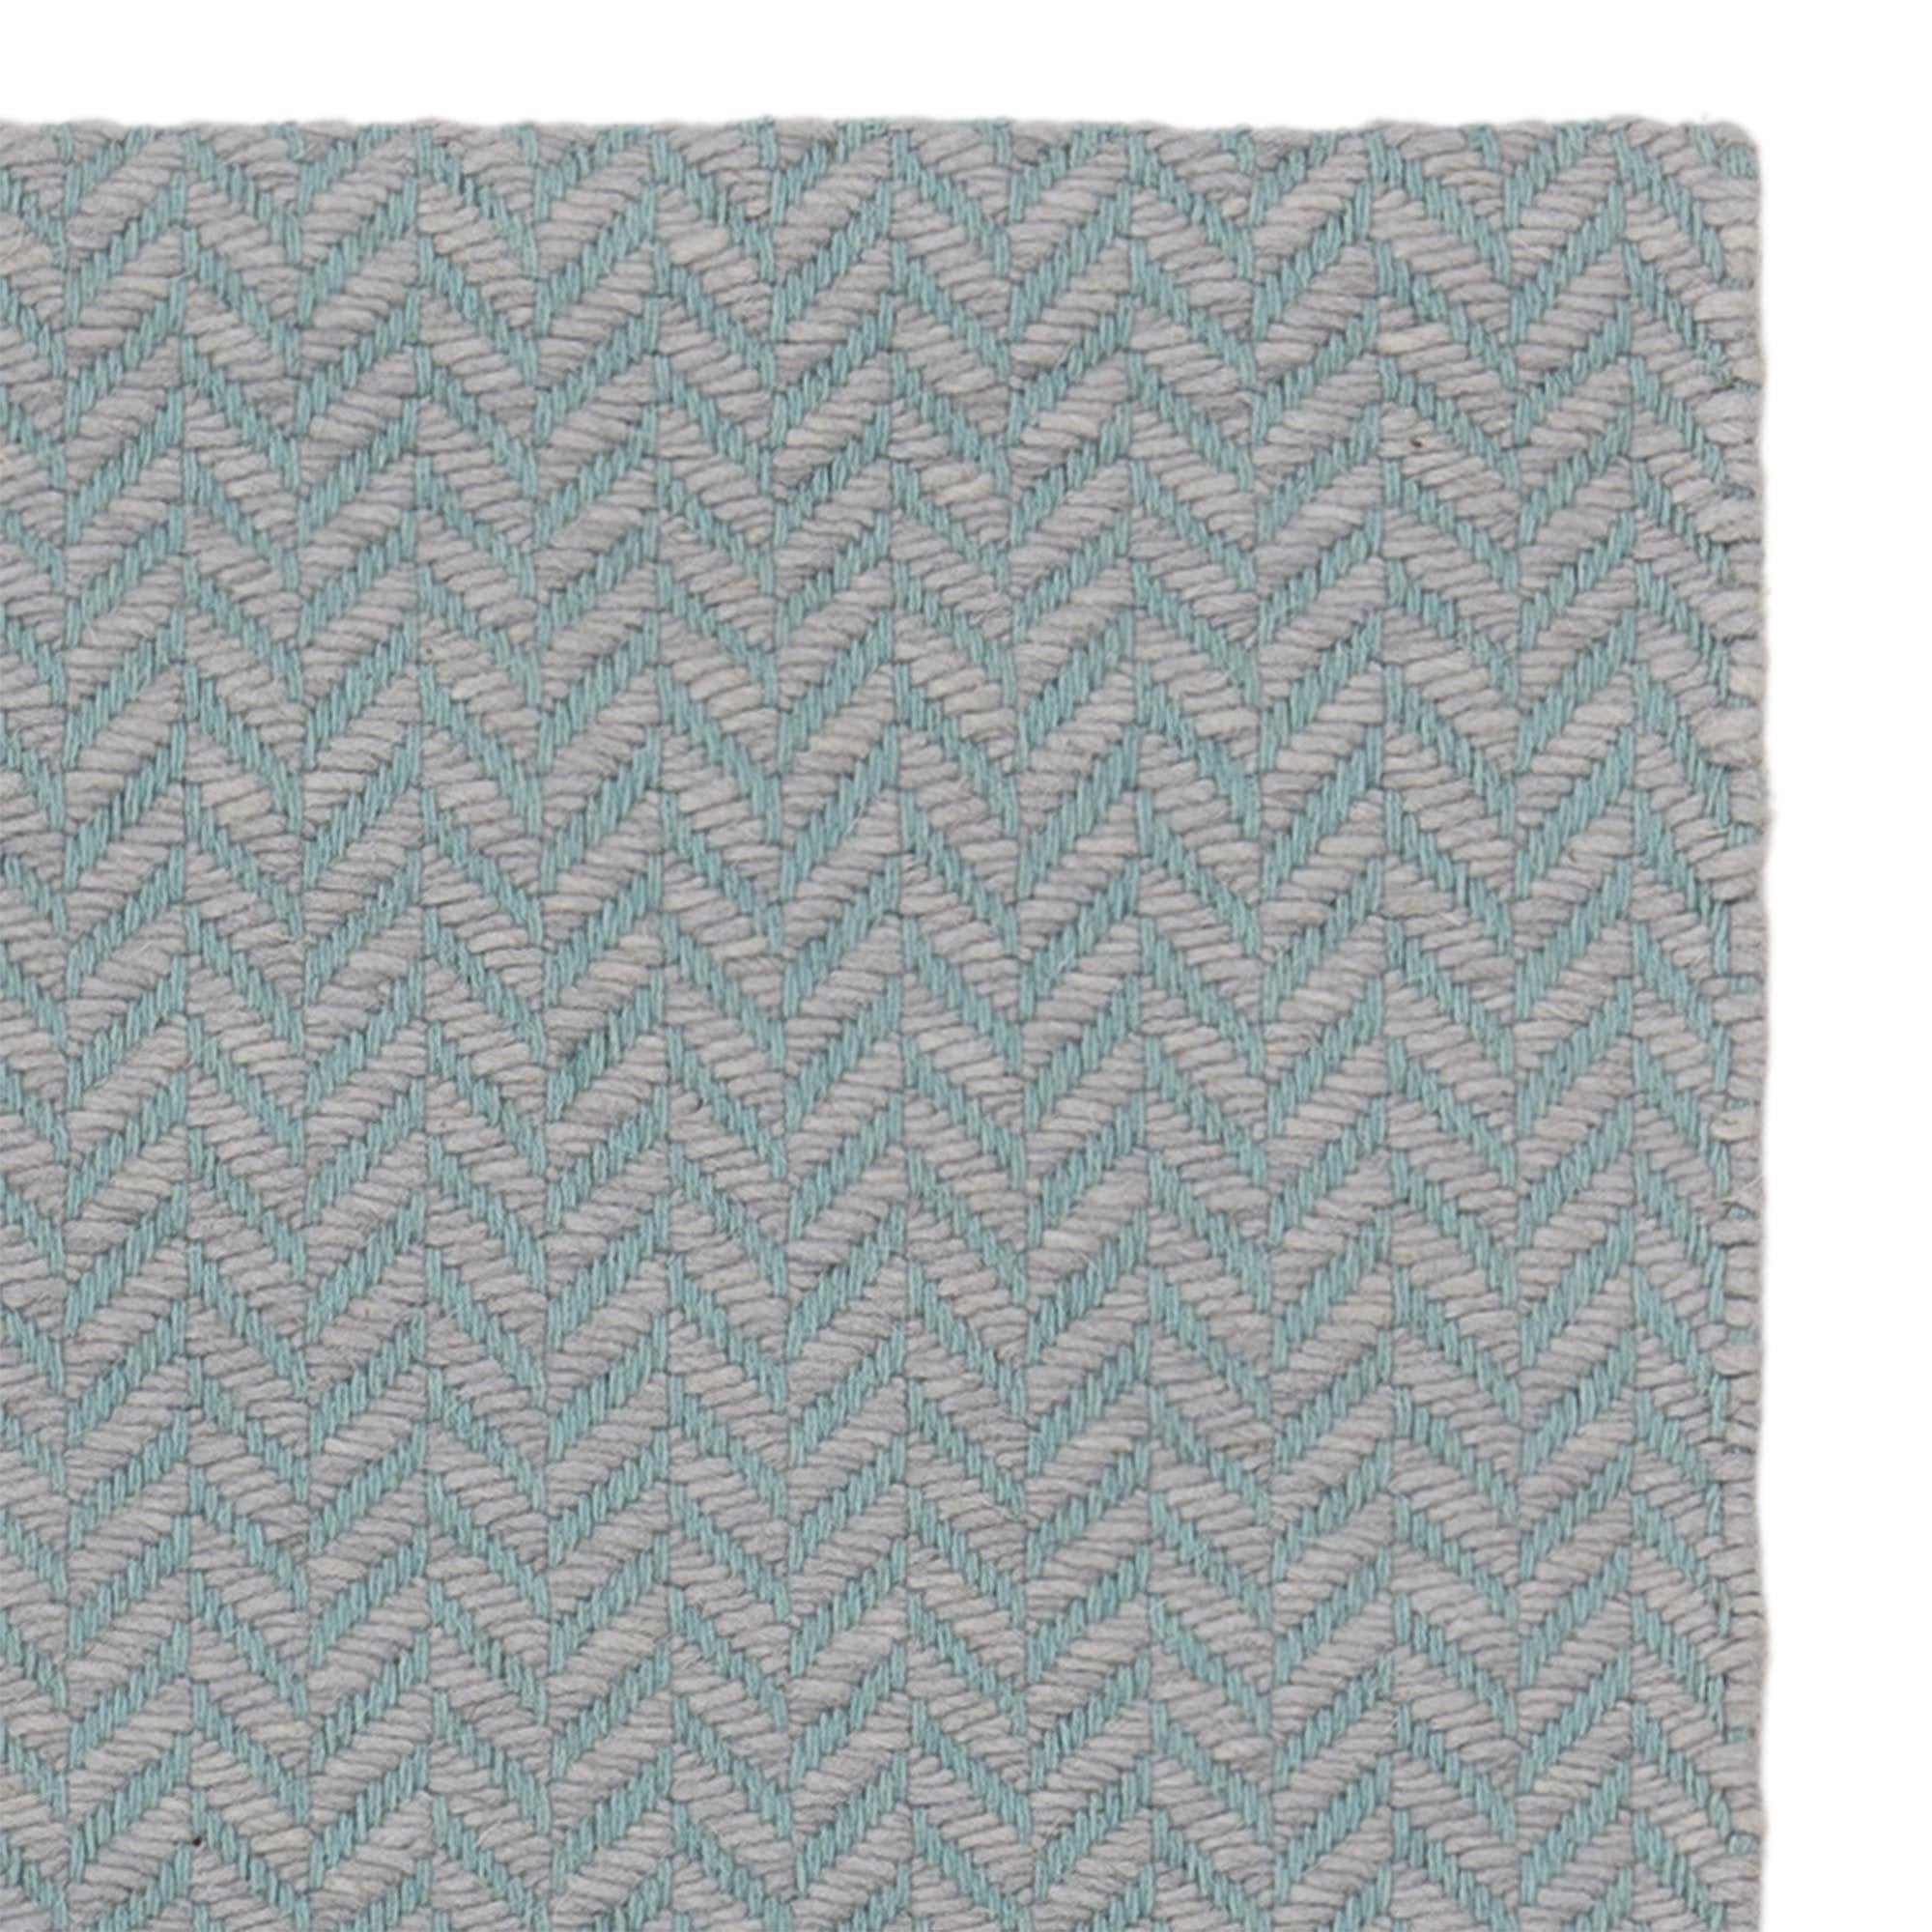 Kolvra rug, mint & light grey, 50% new wool & 50% cotton